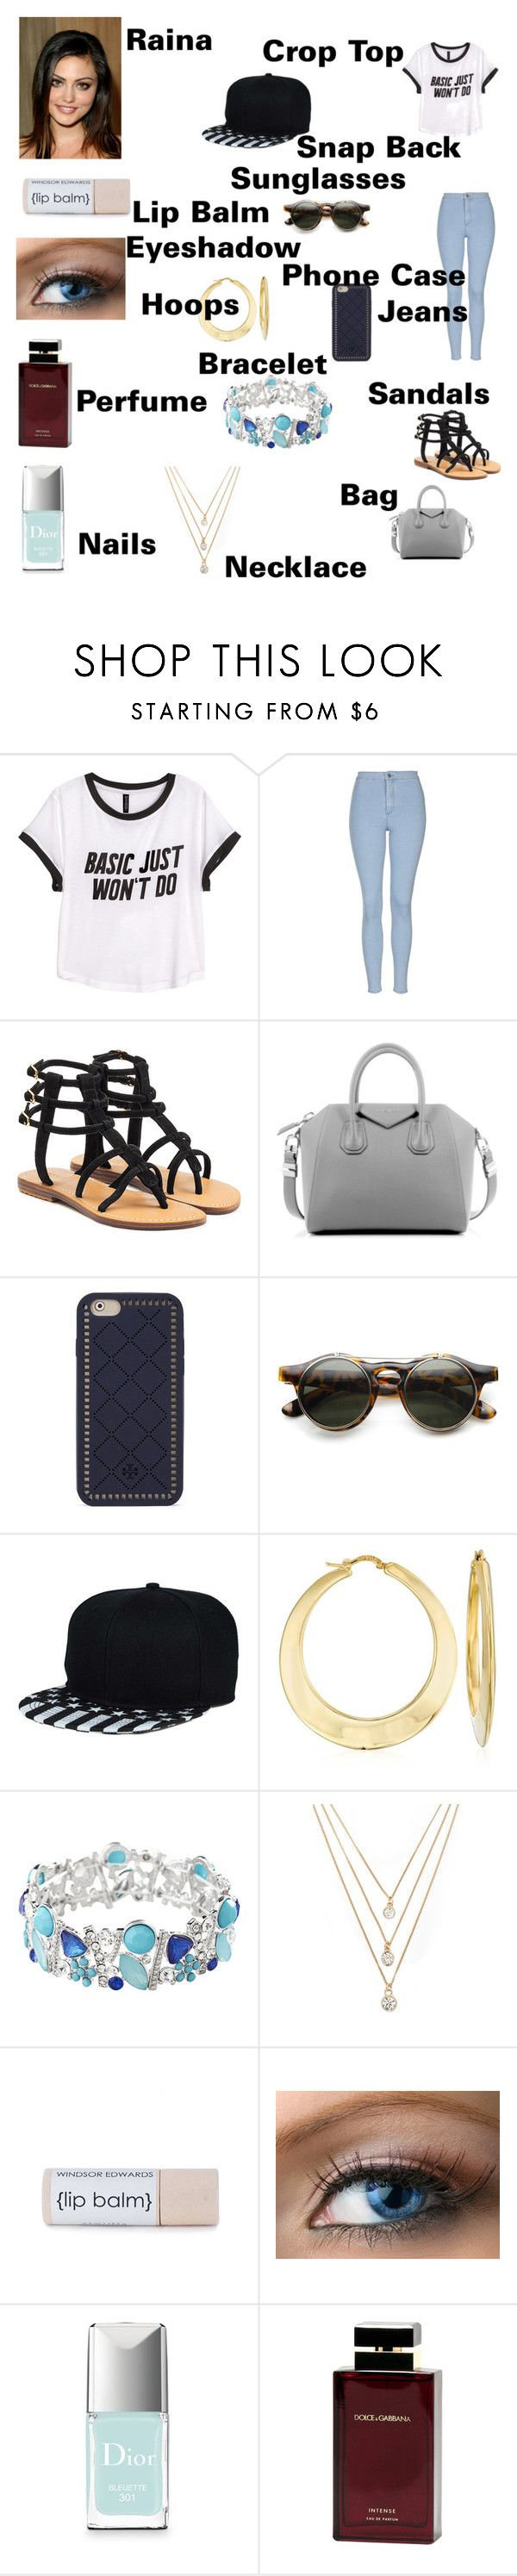 """""""Raina's Outfit for day in Santiago, Chile"""" by onedirectionforever1297 on Polyvore featuring H&M, Topshop, Mystique, Givenchy, Tory Burch, Ross-Simons, Avenue, Forever 21, Christian Dior and Dolce & Gabbana Fragrance"""